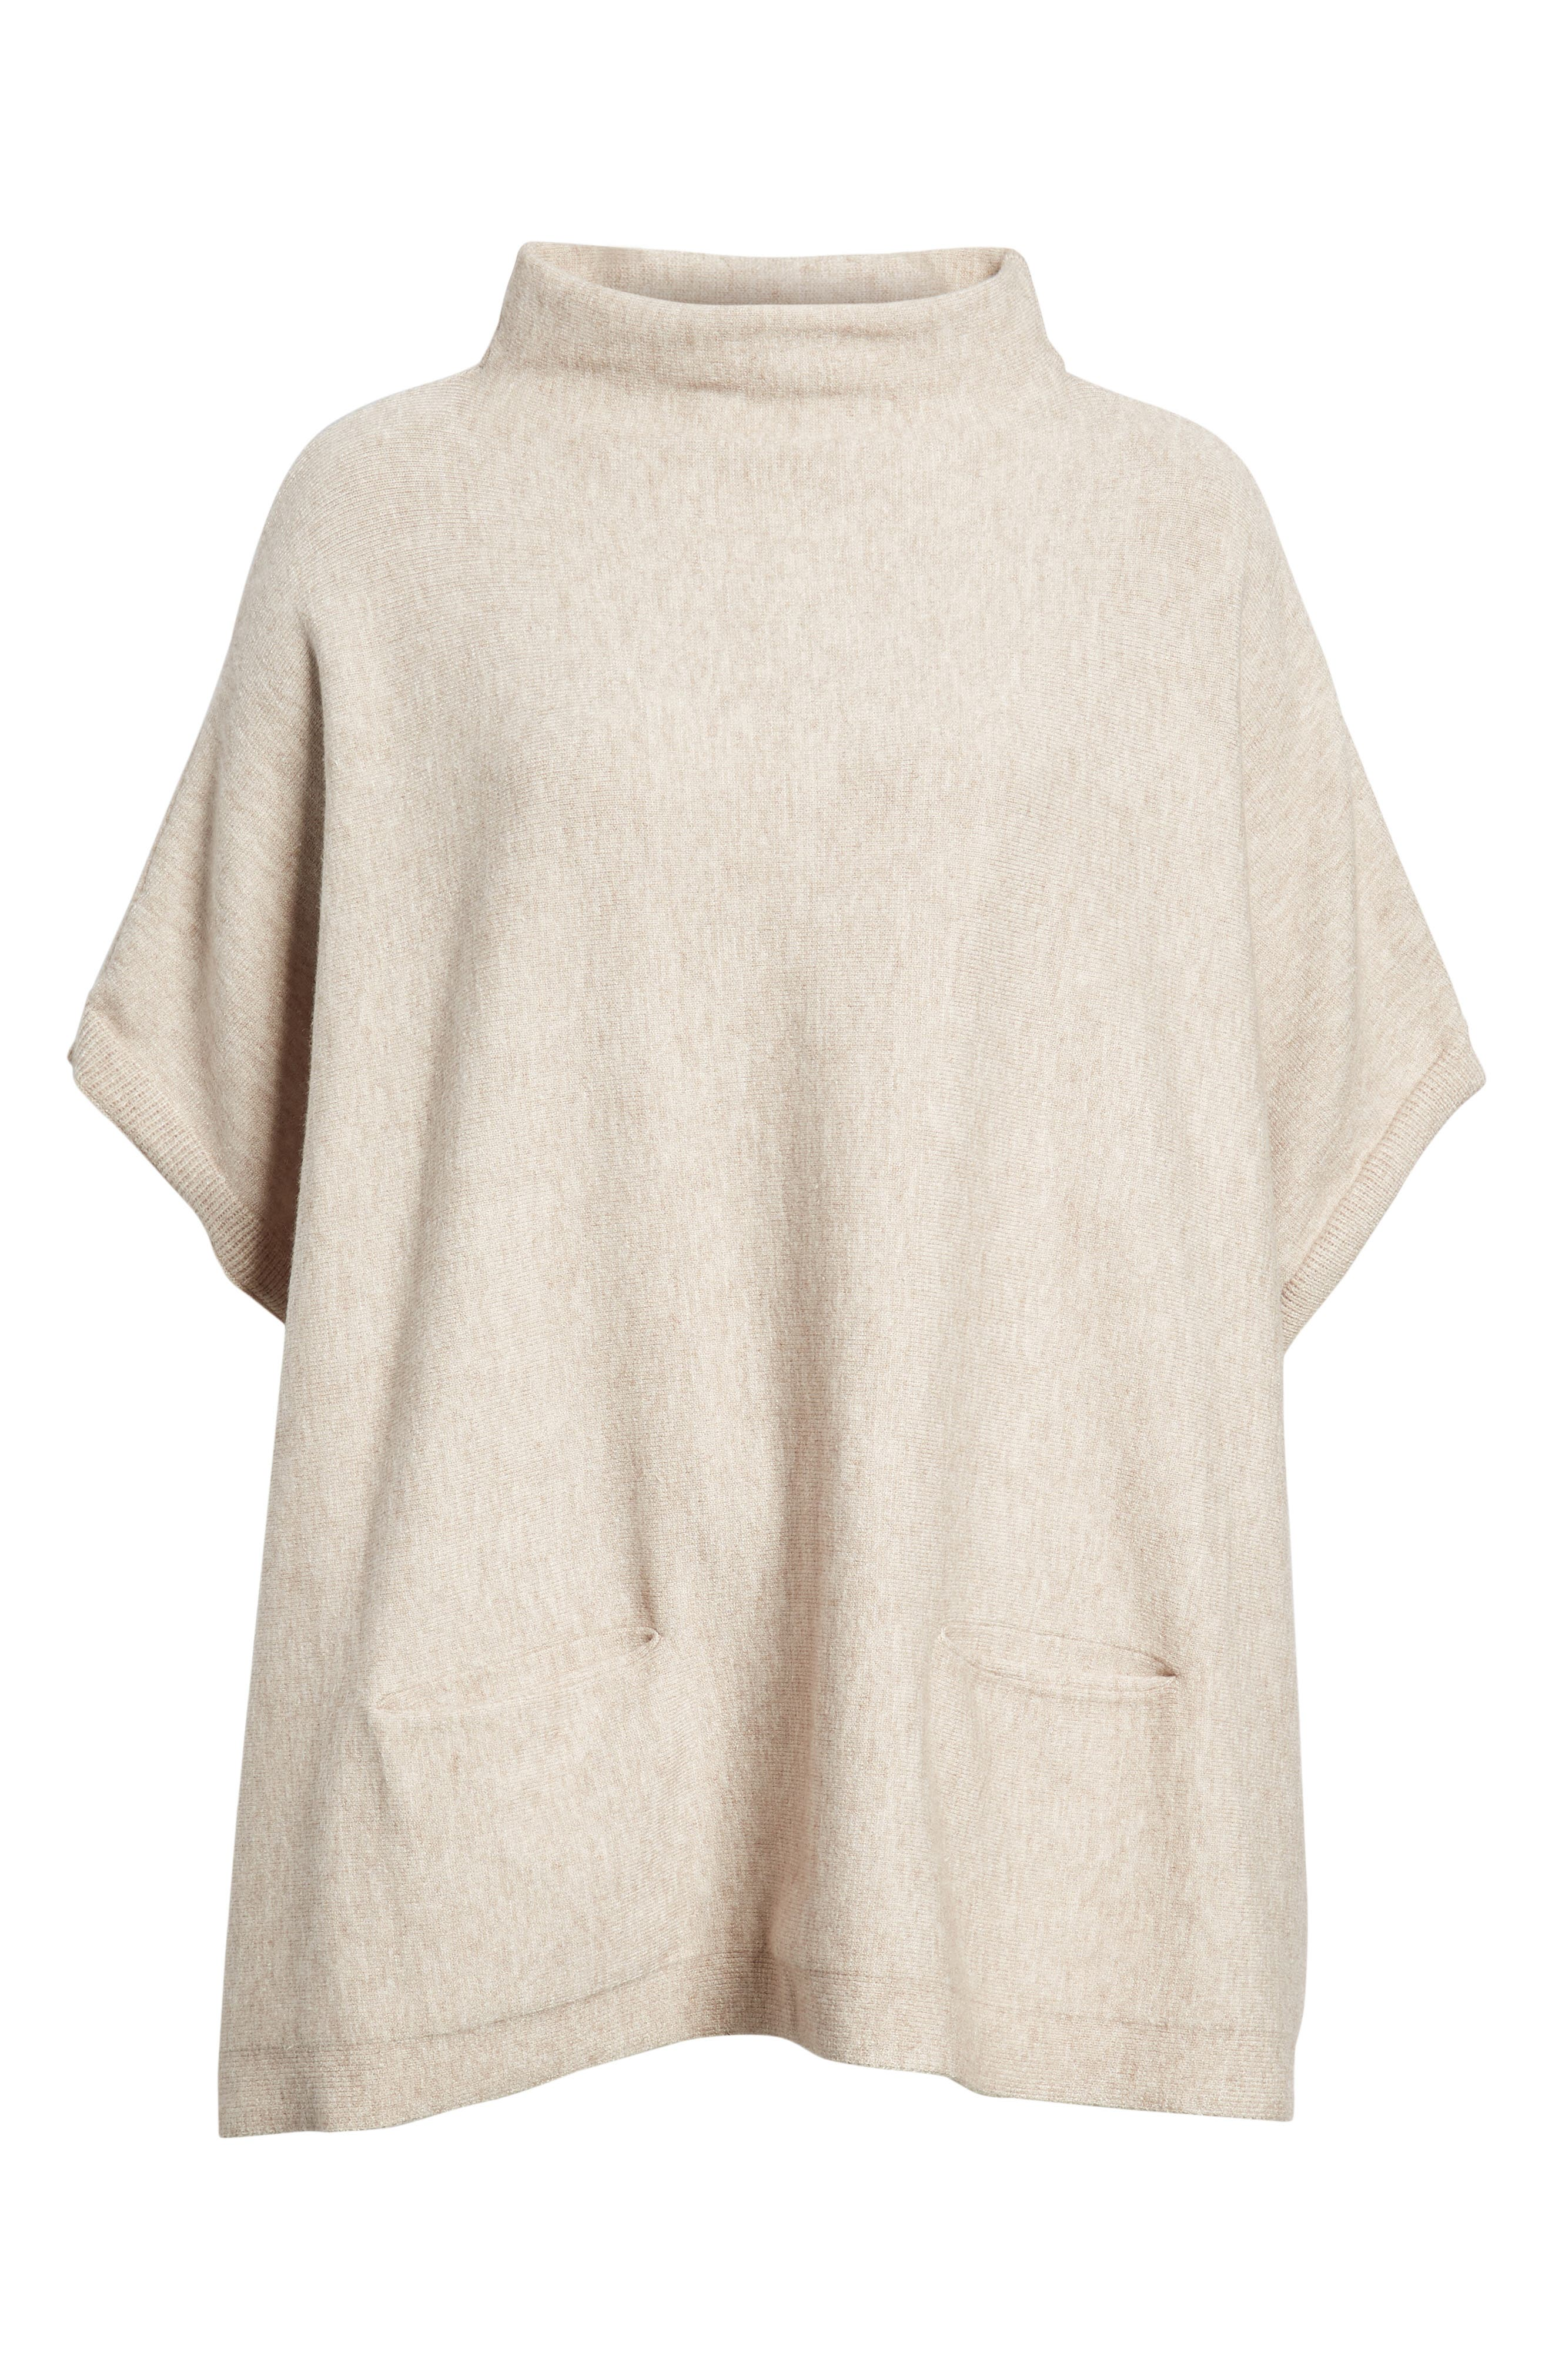 Alternate Image 1 Selected - RD Style Boxy Pocket Sweater